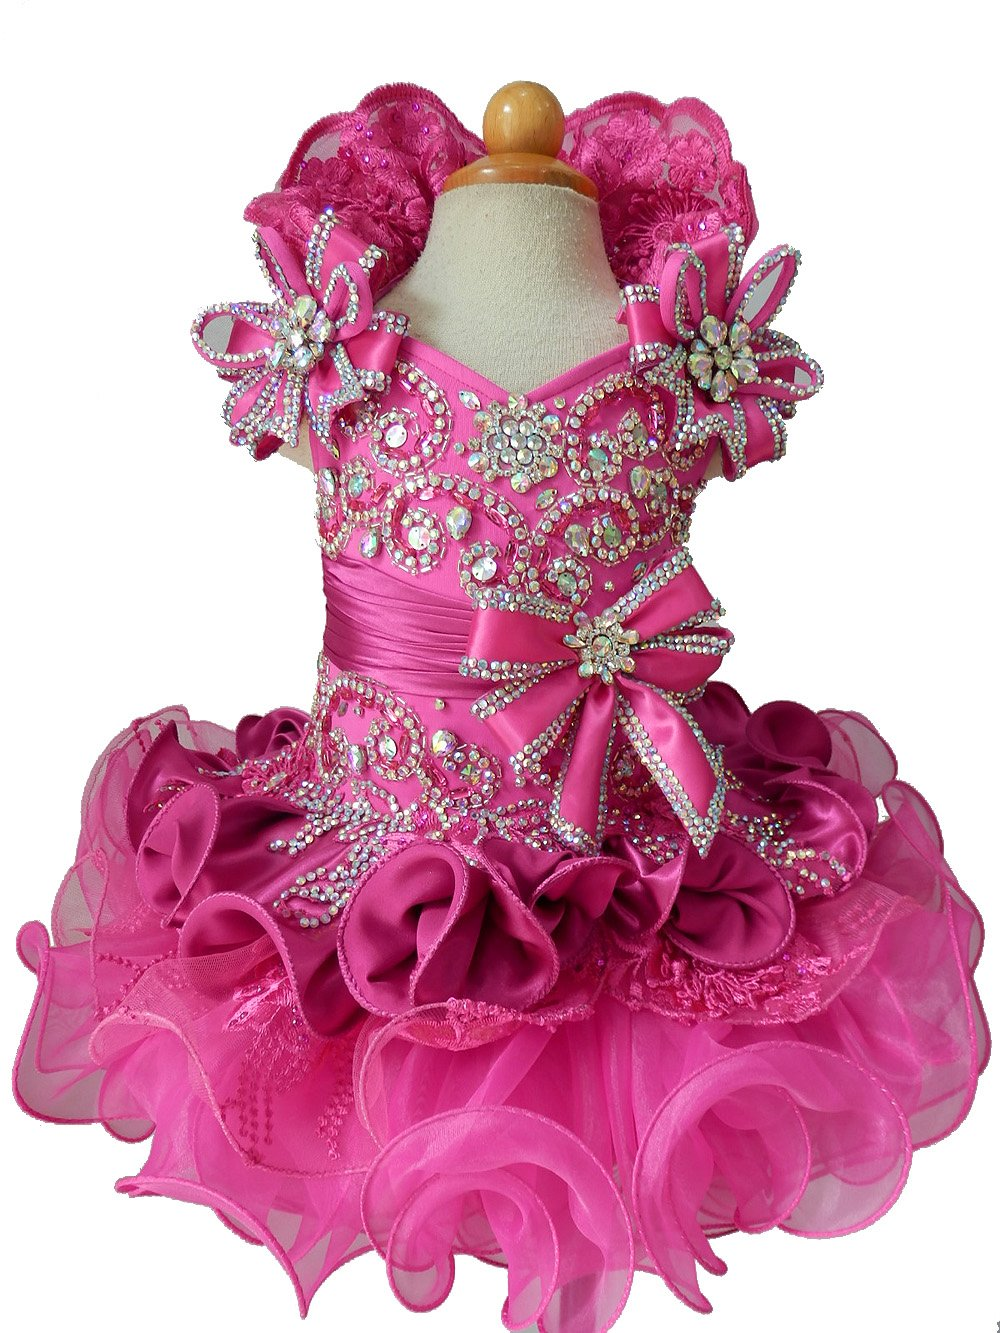 Jenniferwu Infant Toddler Baby Newborn Little Girl's Pageant Party Birthday Dress G015 Custom Make From Size 1 To Size 7